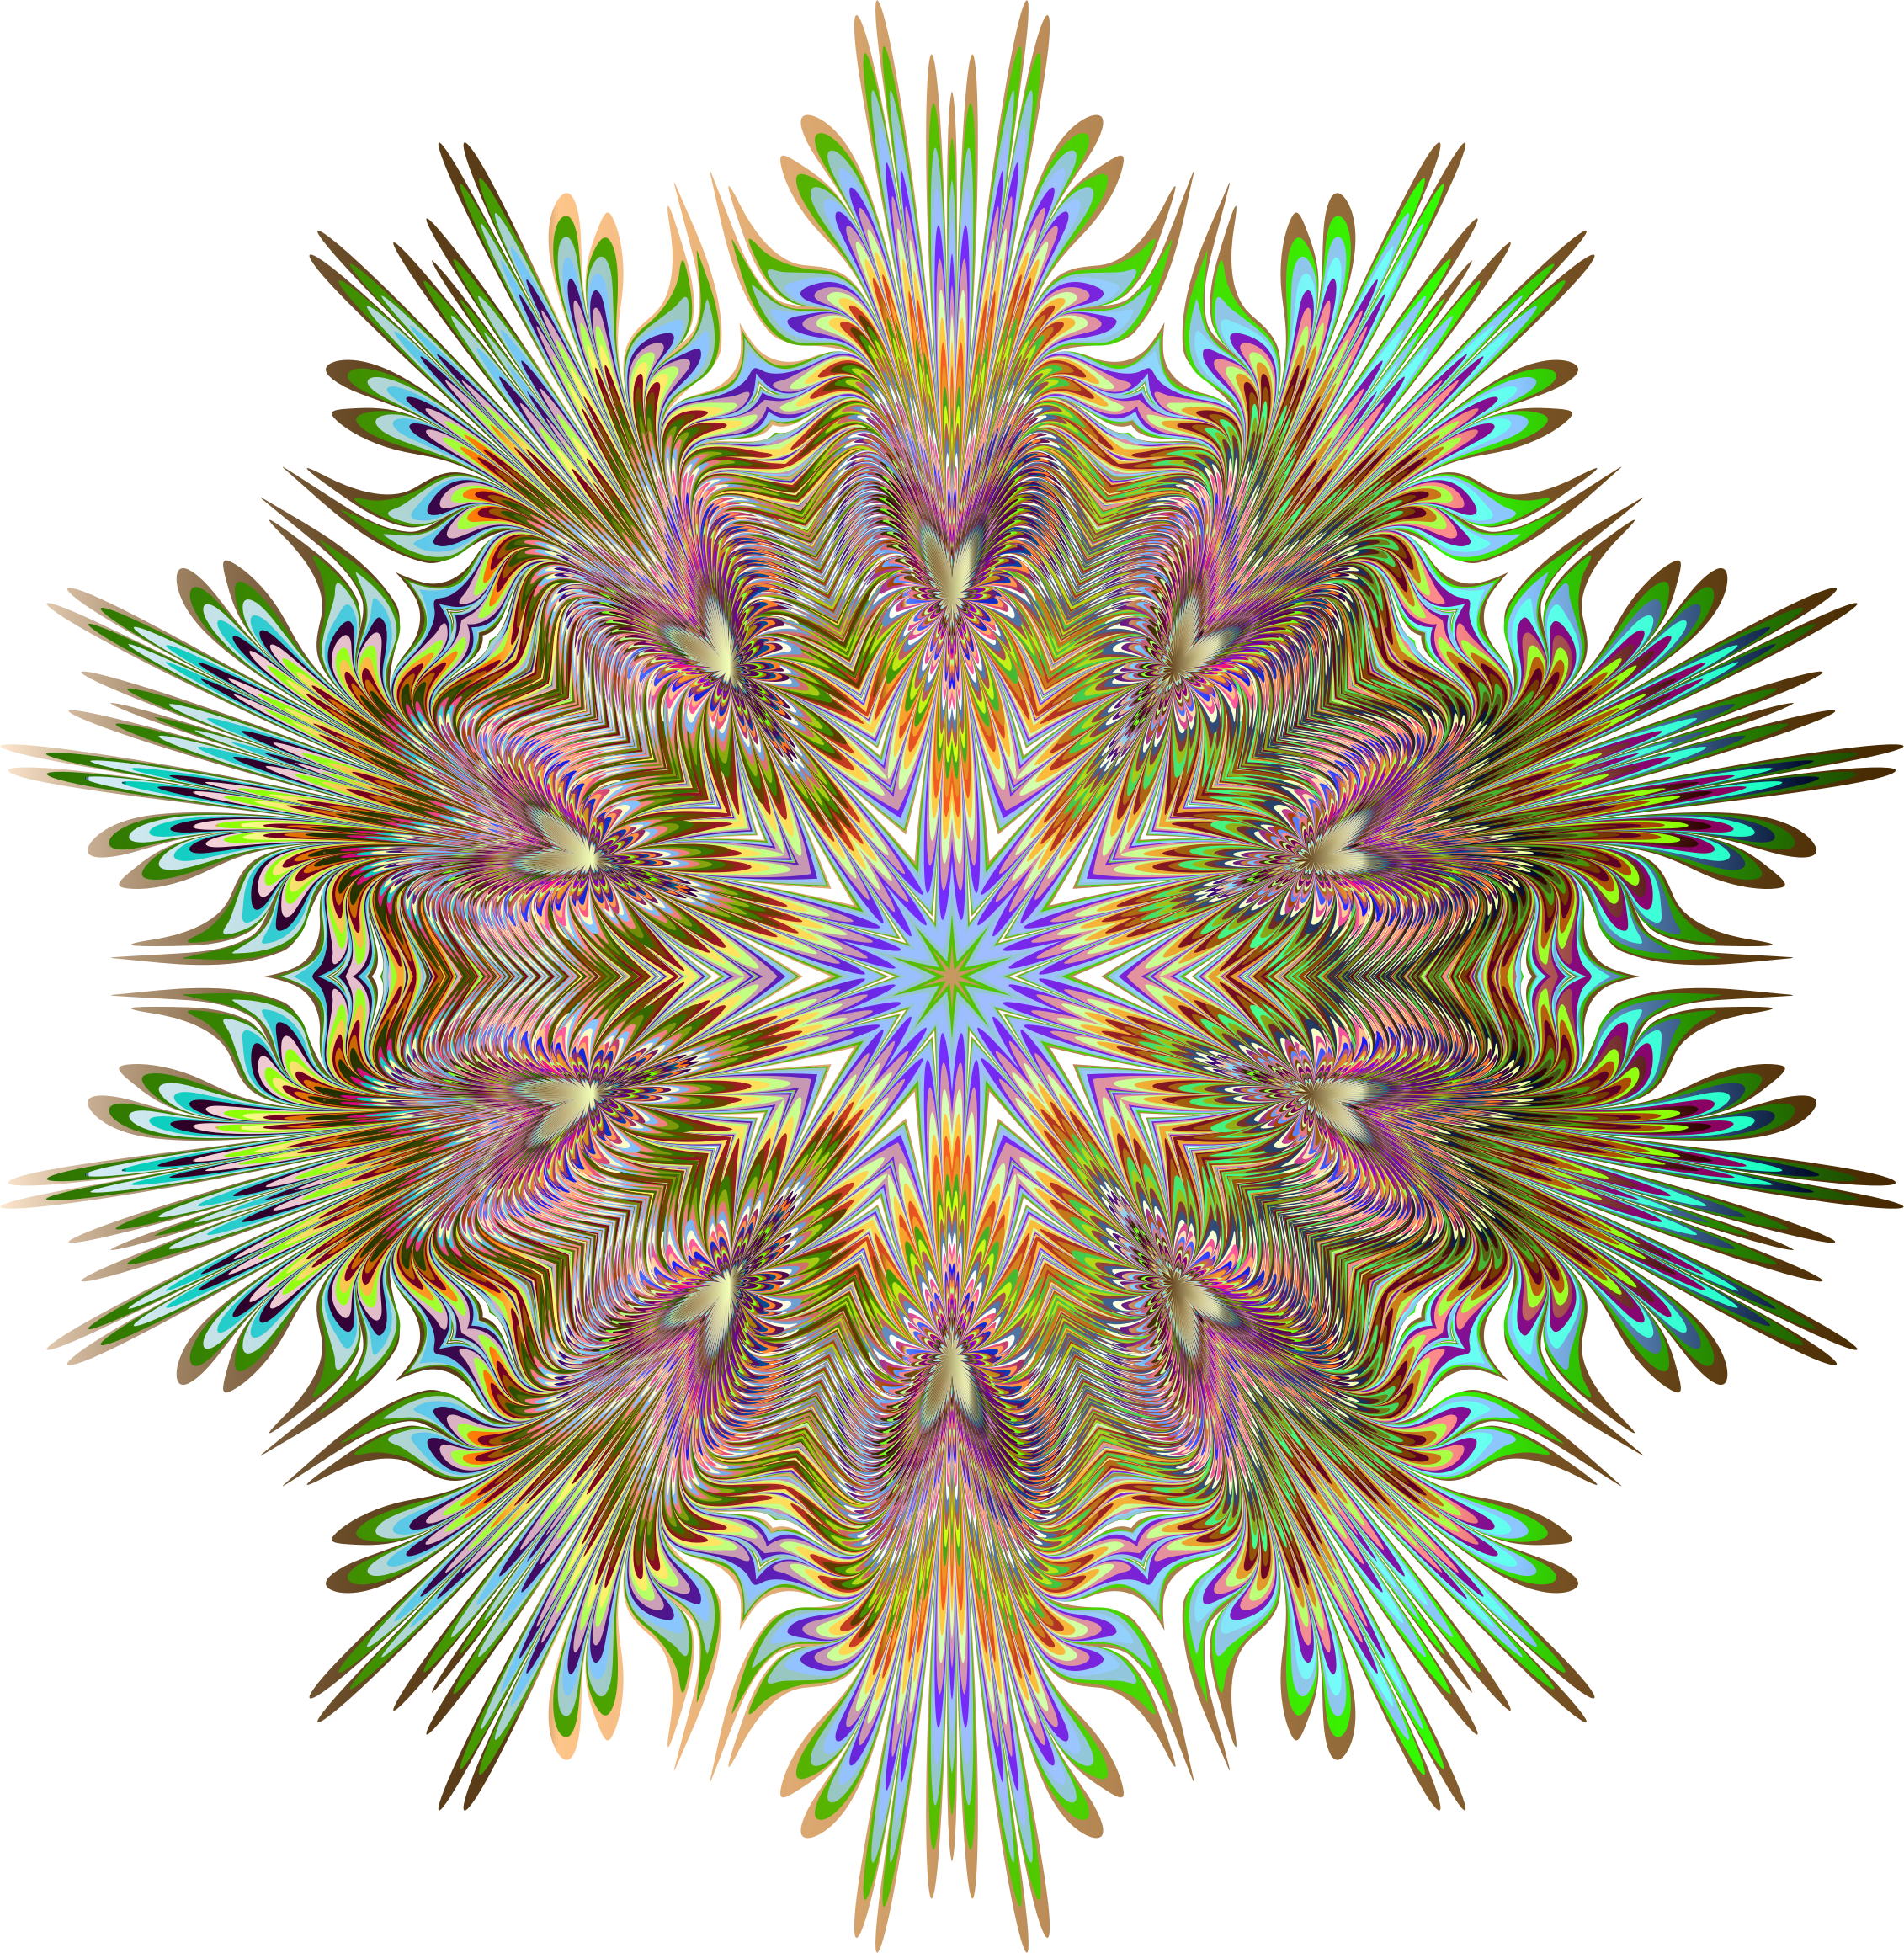 Chromatic Symmetric Mandala 4 No Background by GDJ